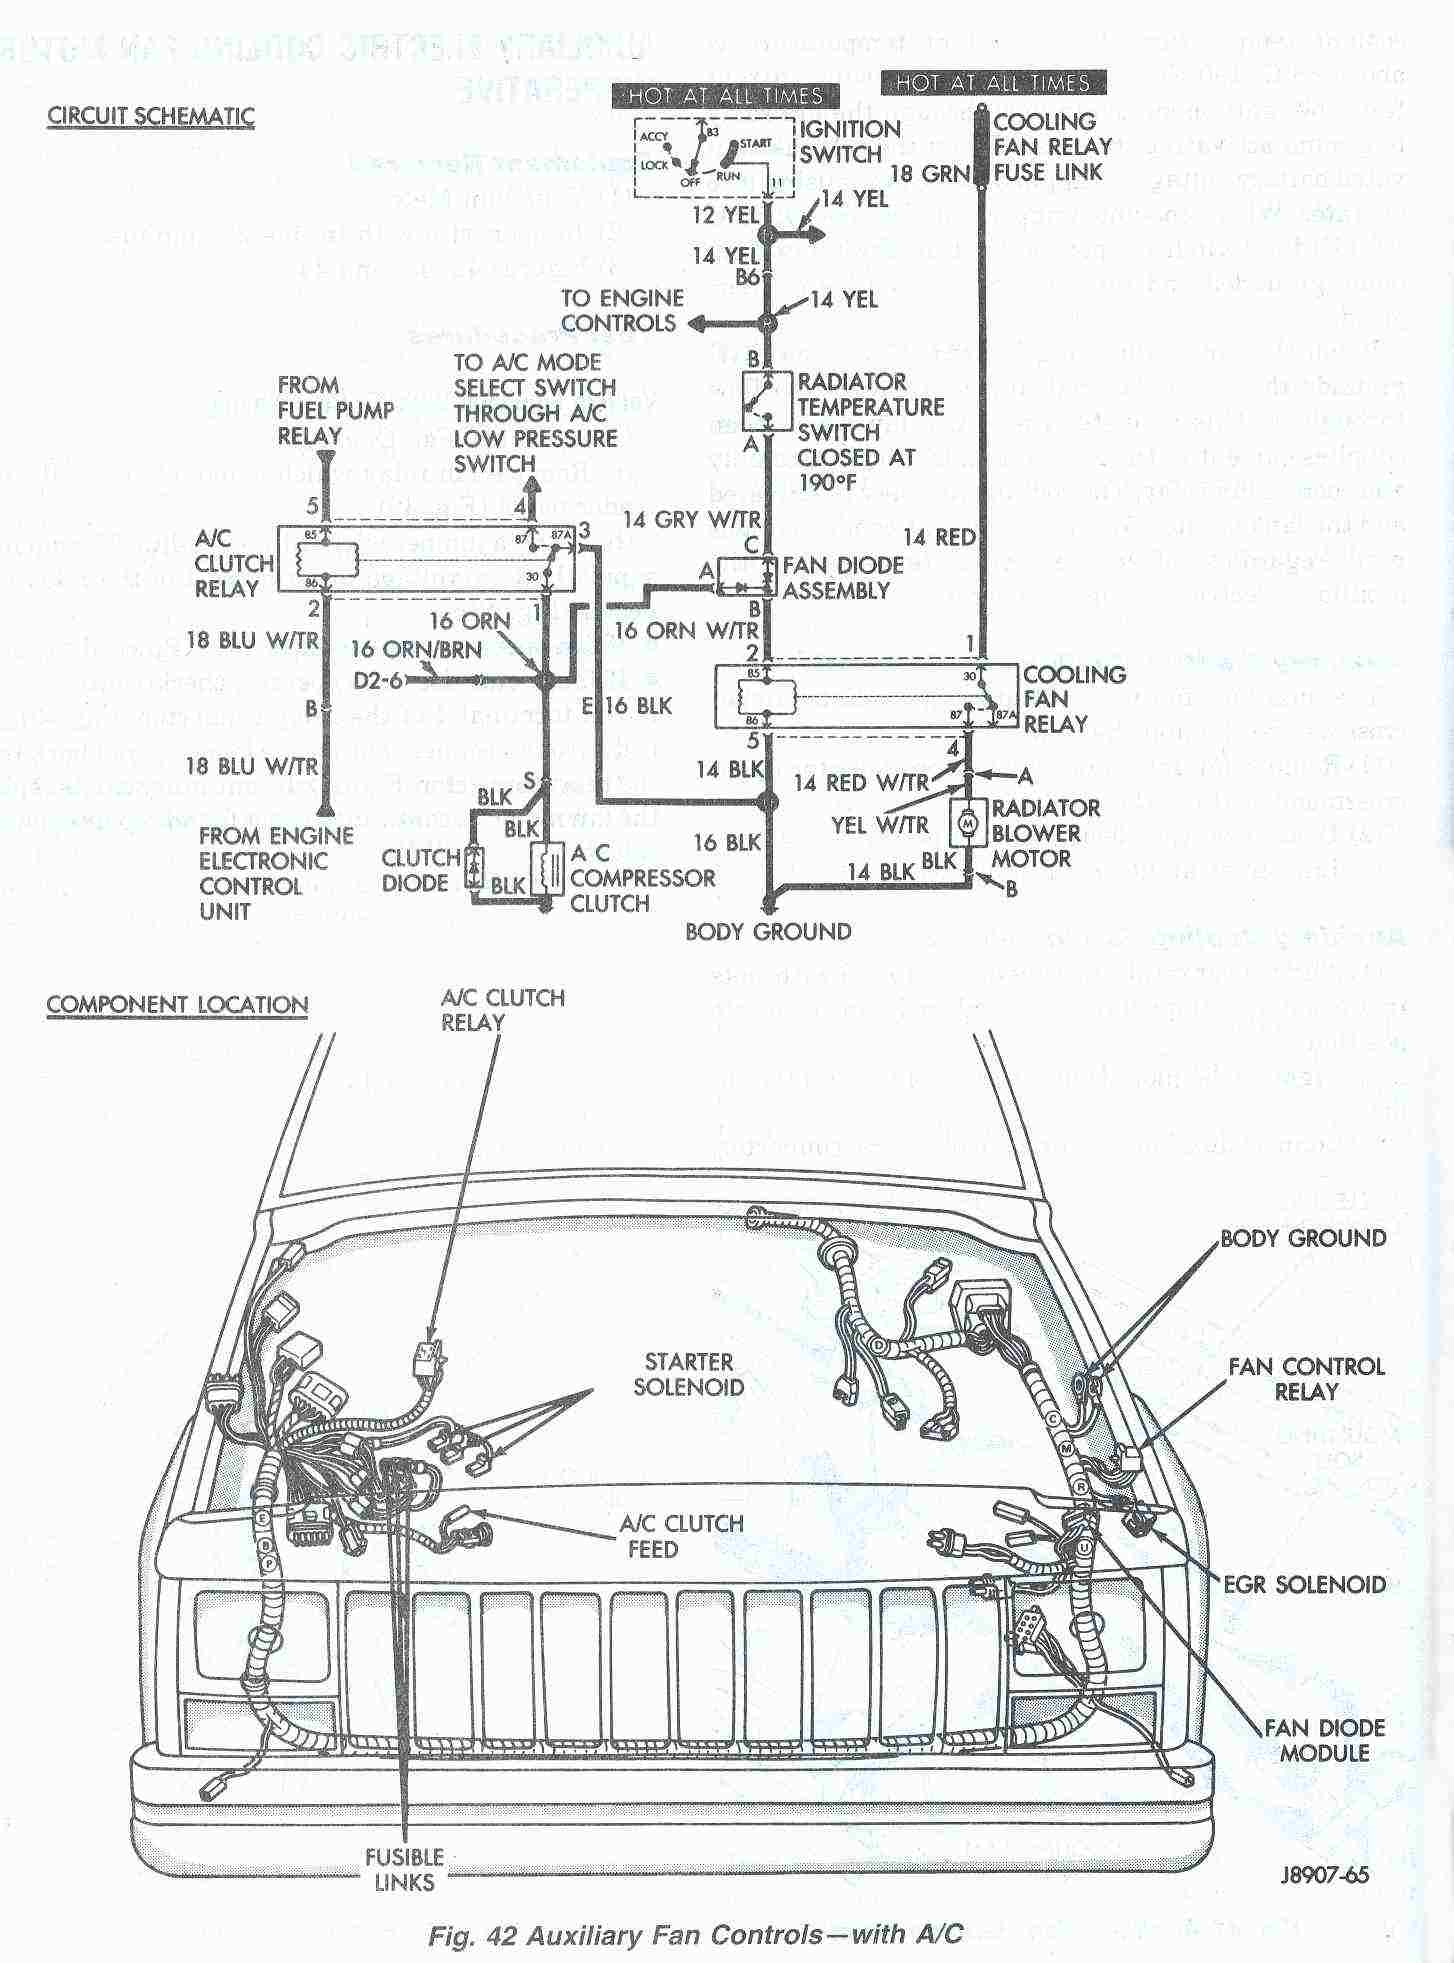 Auxiliary_Fan_Schematic_Fig_42 jeep cherokee cooling system electric cooling fan wiring diagram for 94 jeep cherokee at suagrazia.org